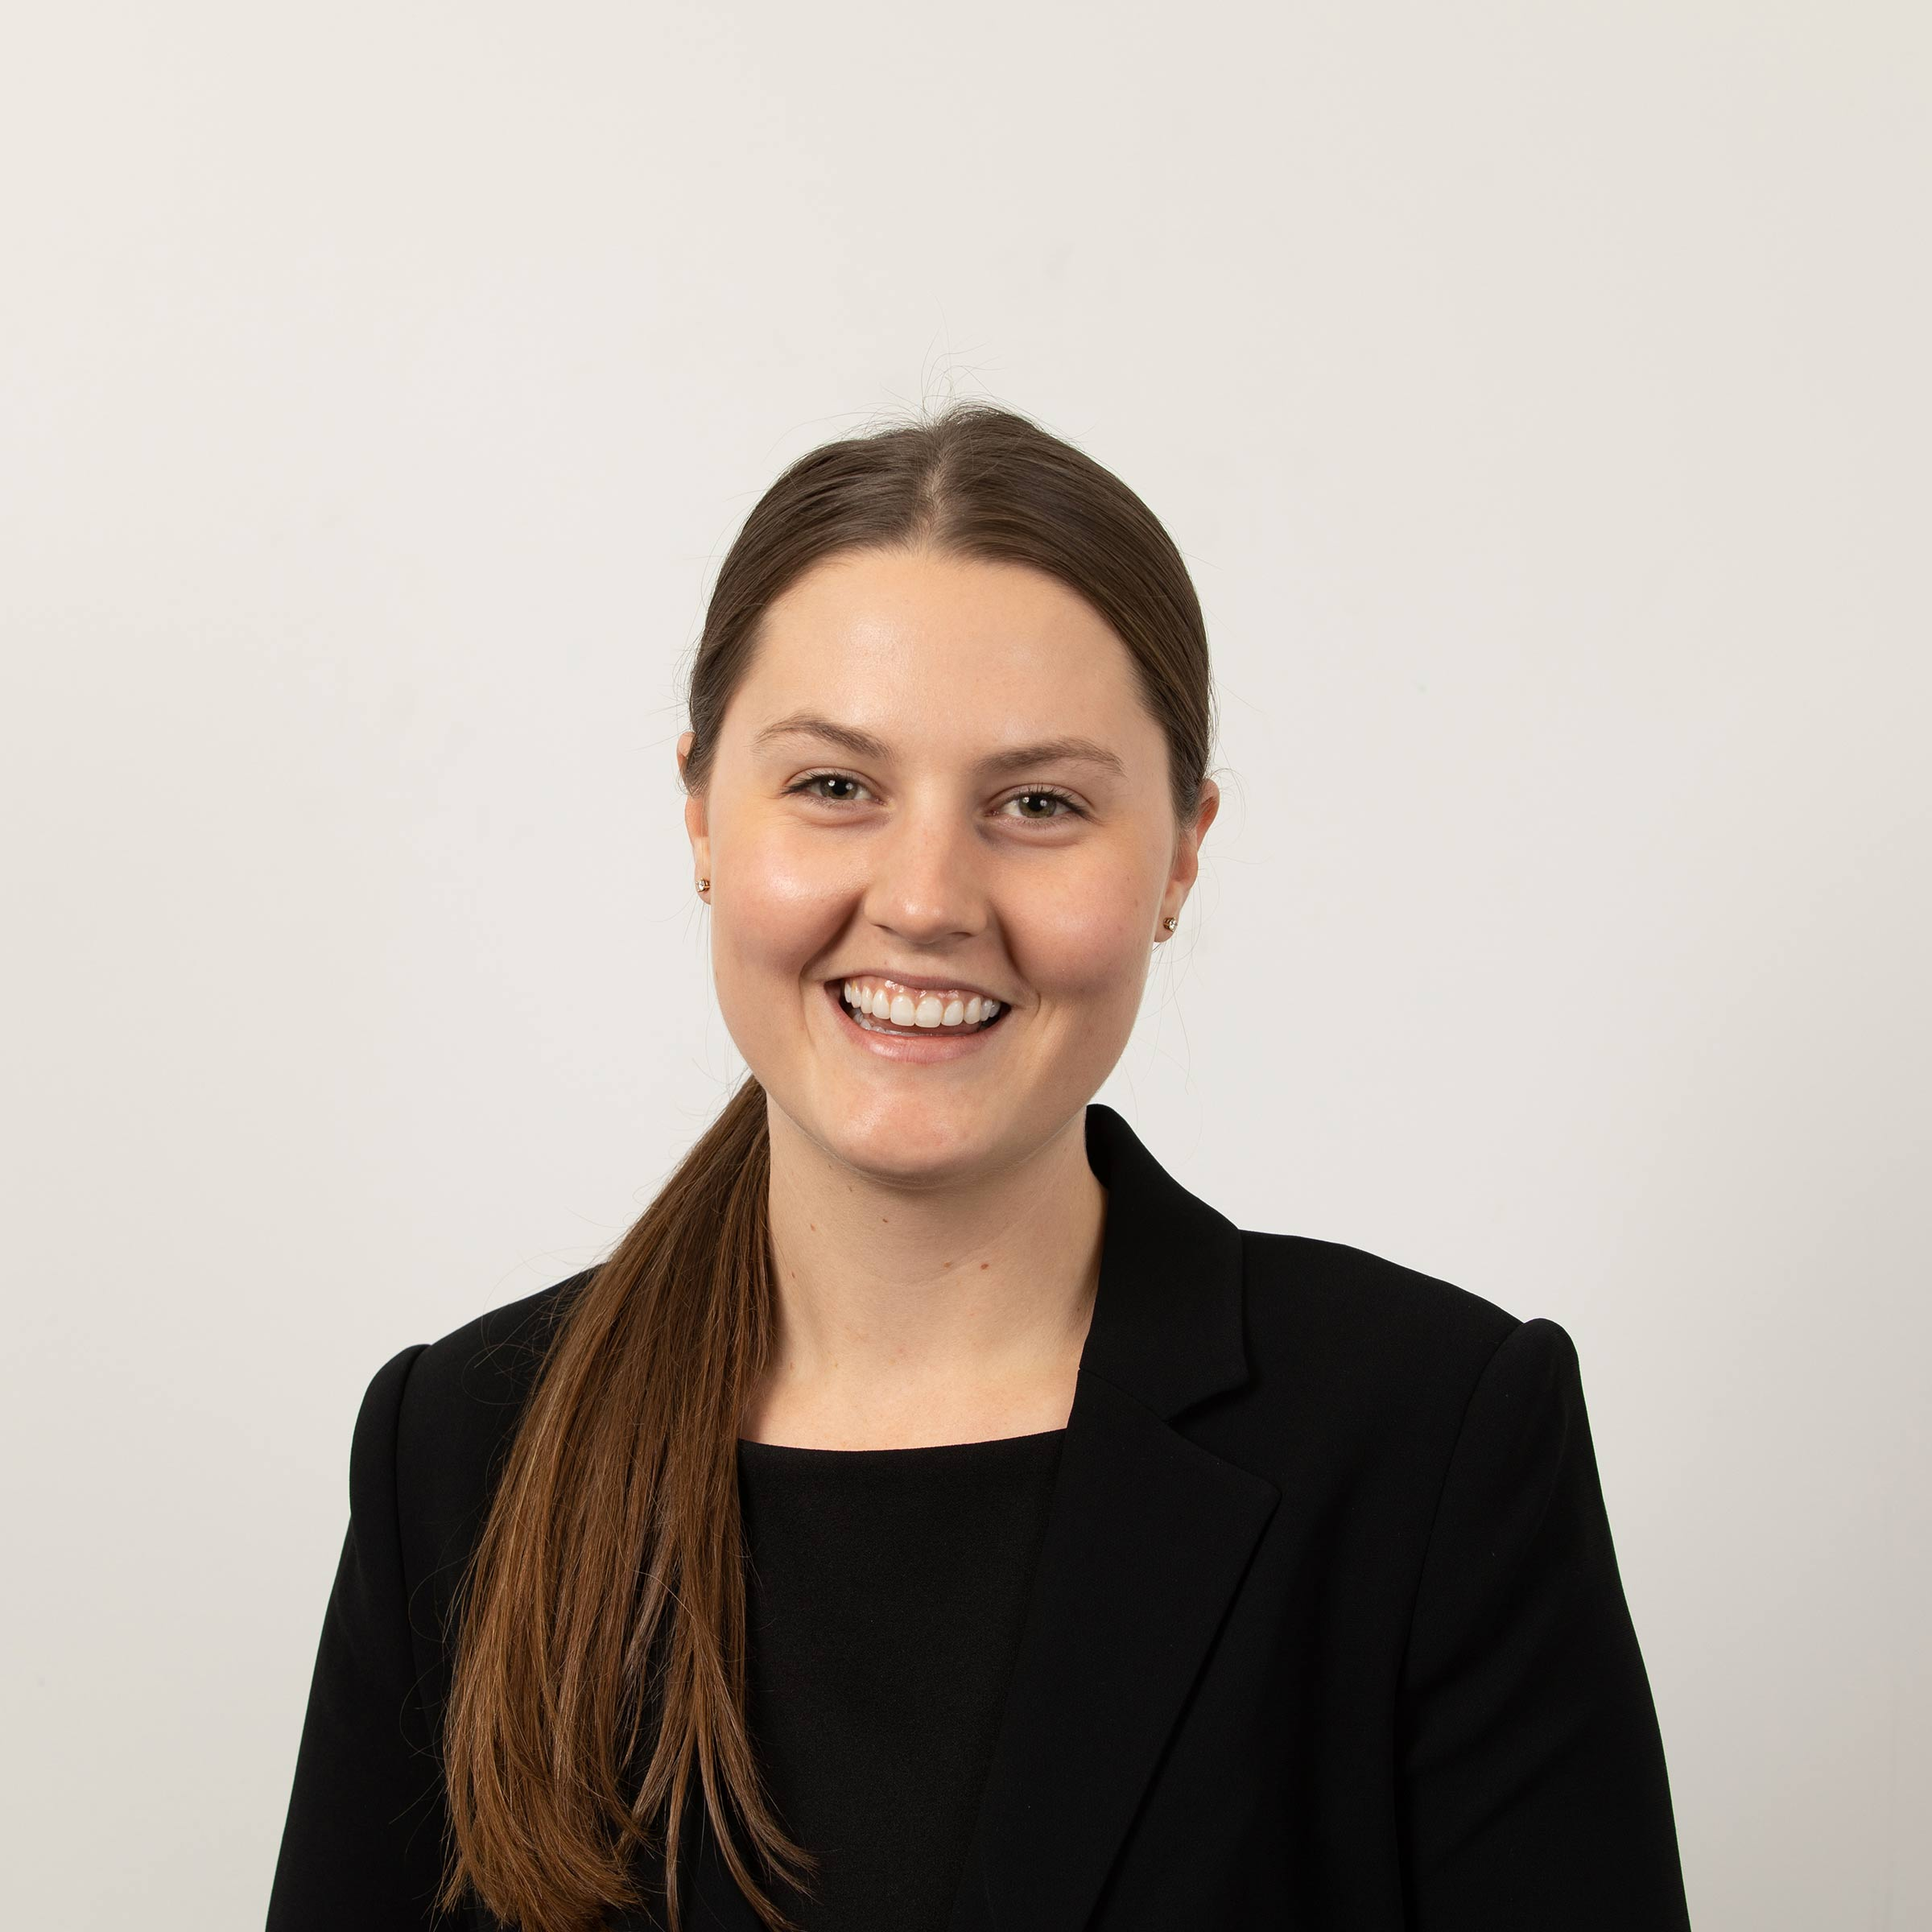 a natural corporate headshot of a staff member at the University of Newcastle